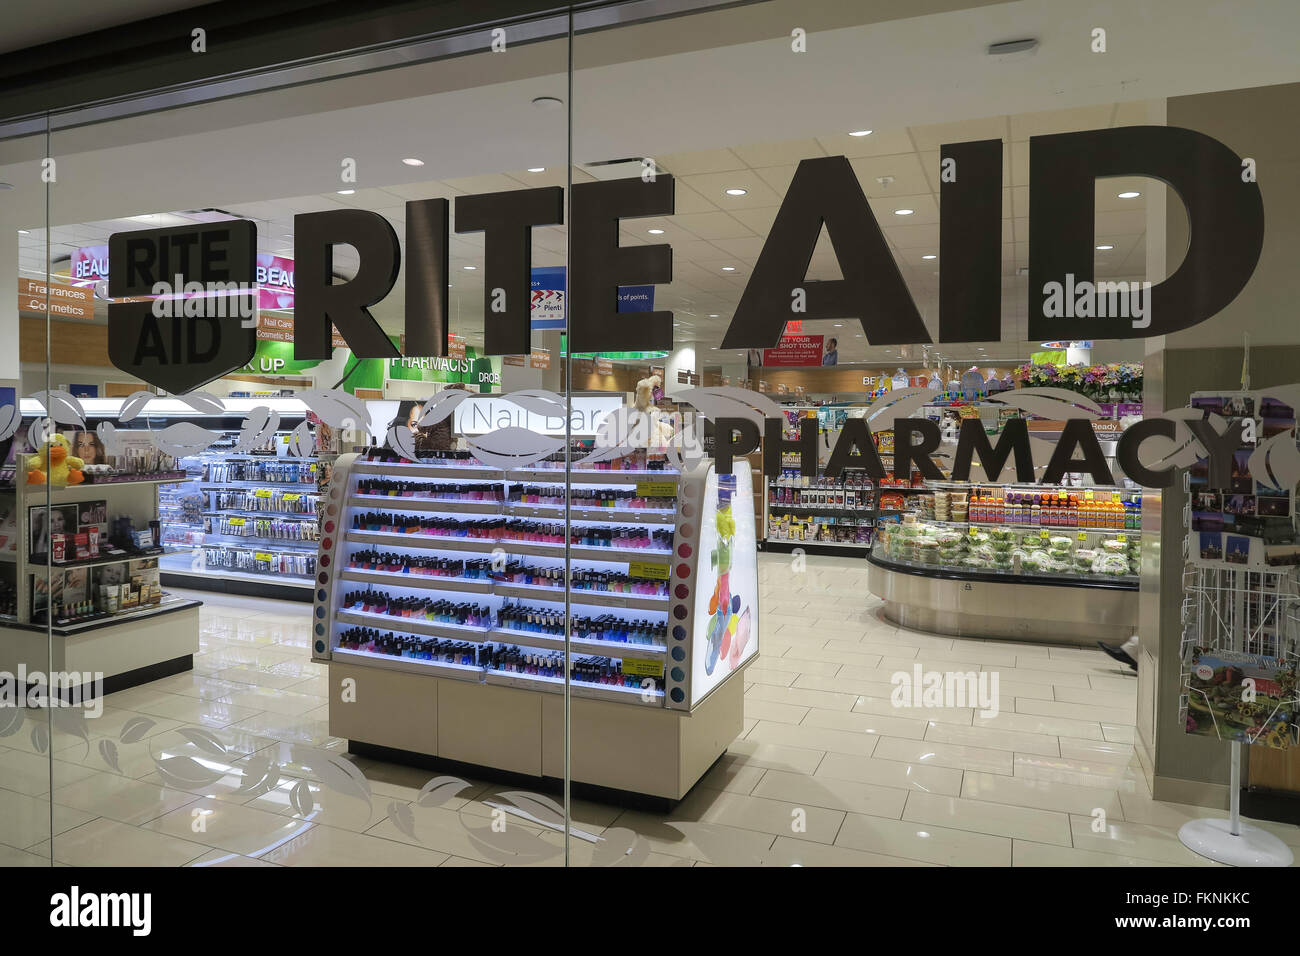 north park center mall stock photos north park center mall stock rite aid pharmacy at brookfield place world financial center nyc stock image